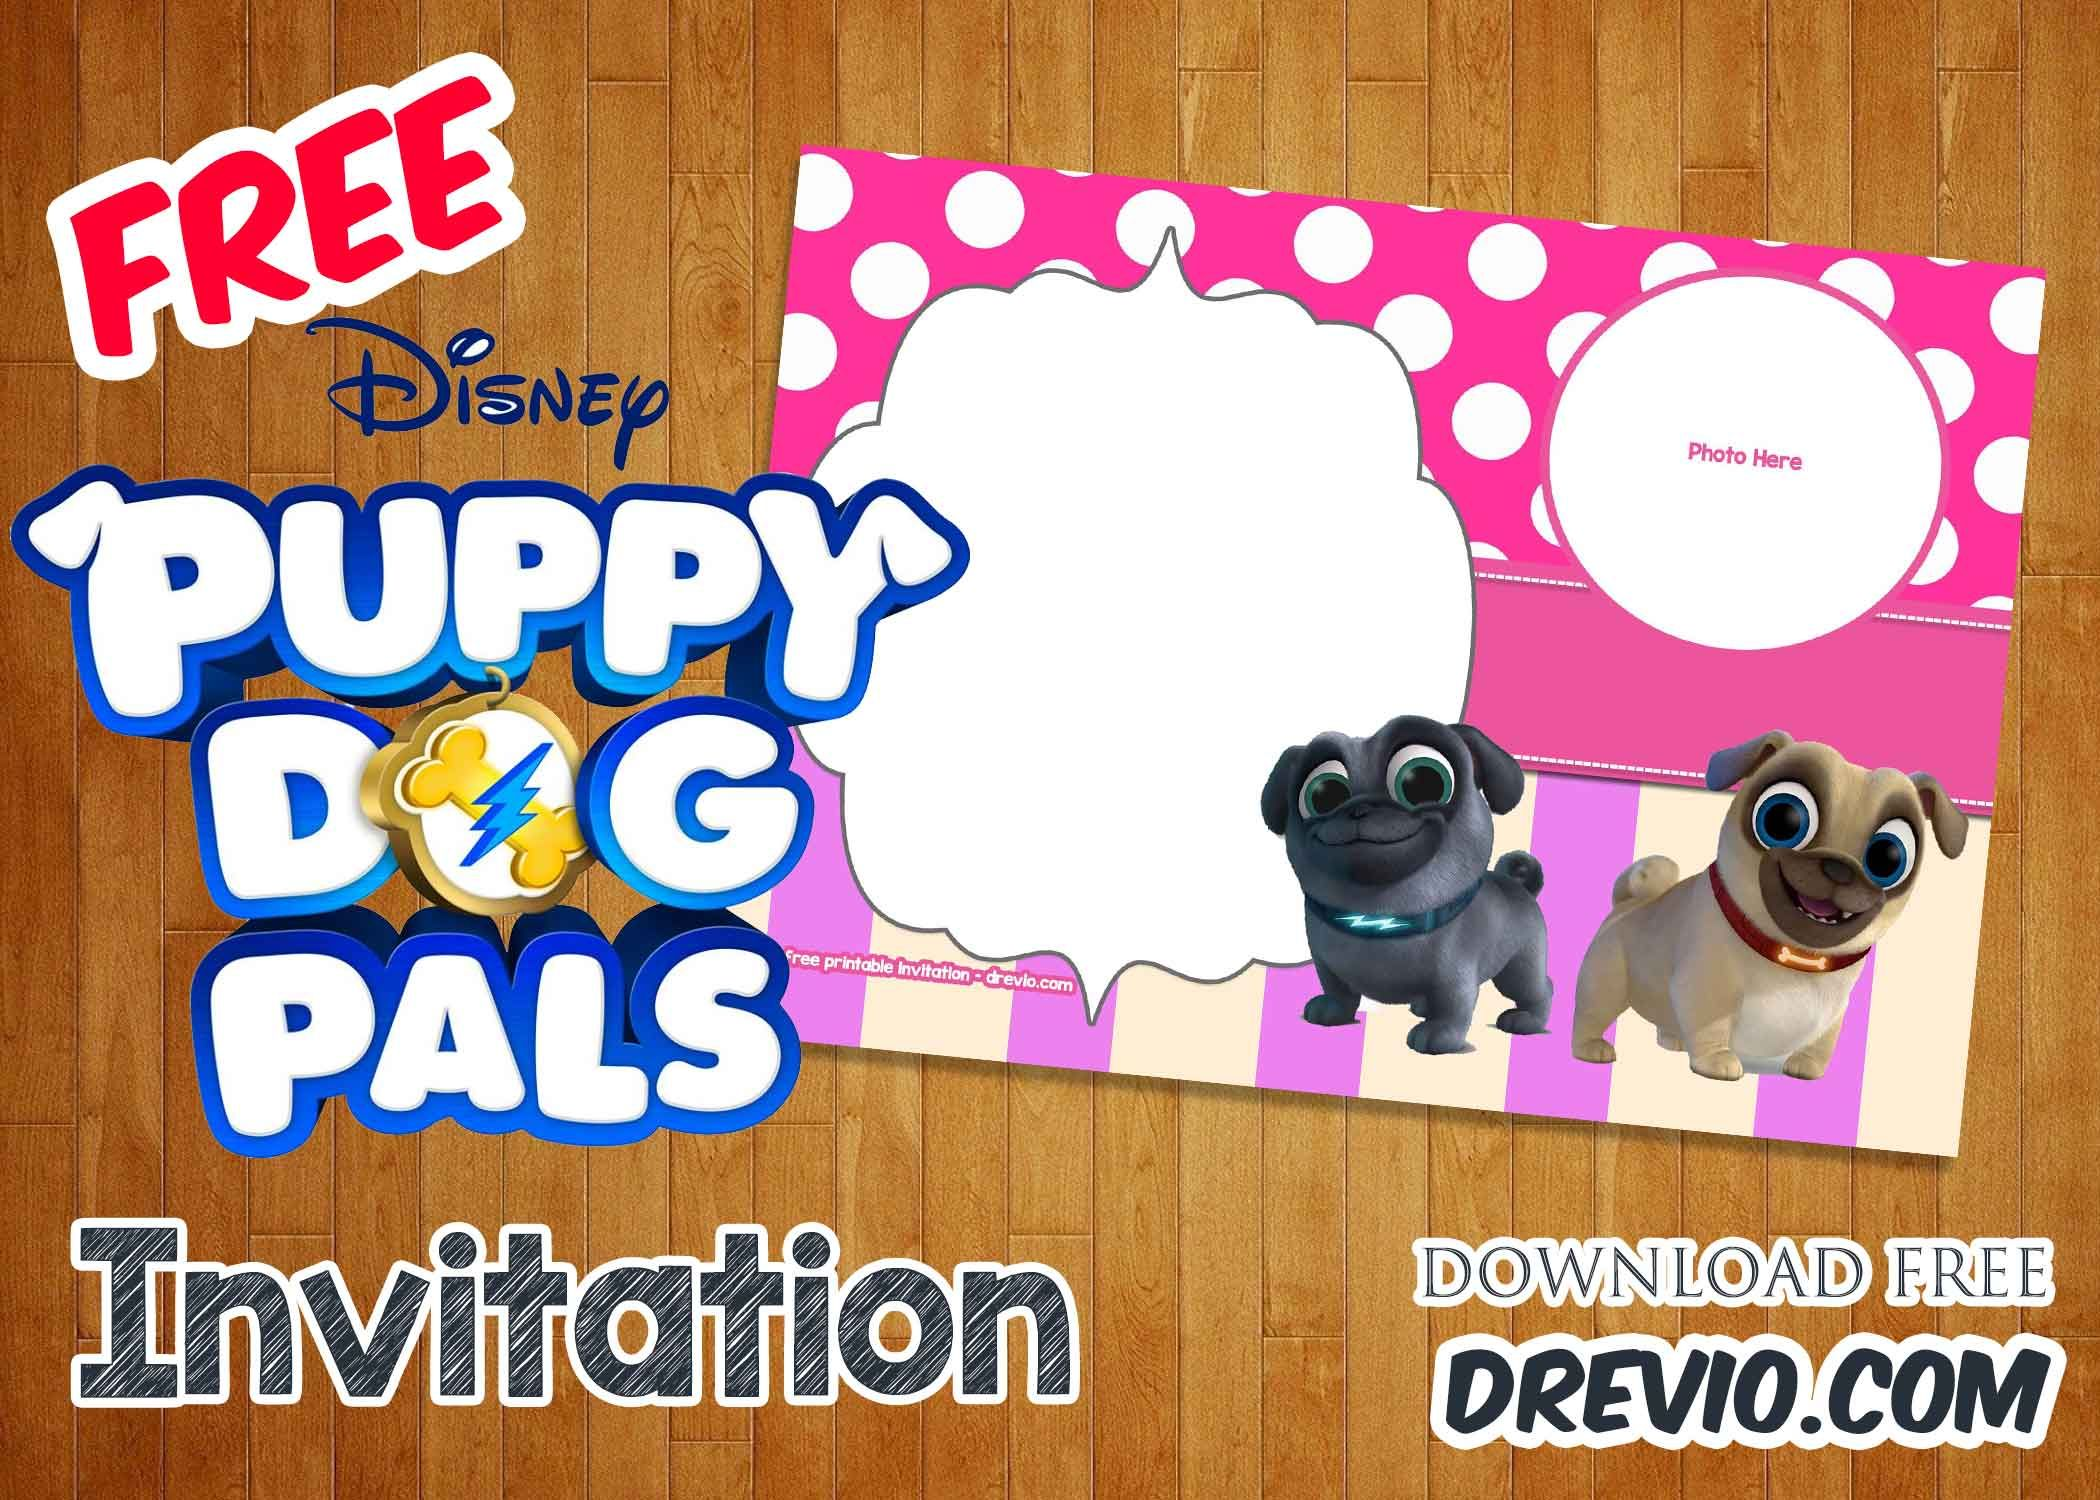 Free Disney Puppy Dog Pals Invitation Templates Drevio Free Printable Birthday Invitations Printable Birthday Invitations Free Invitation Templates